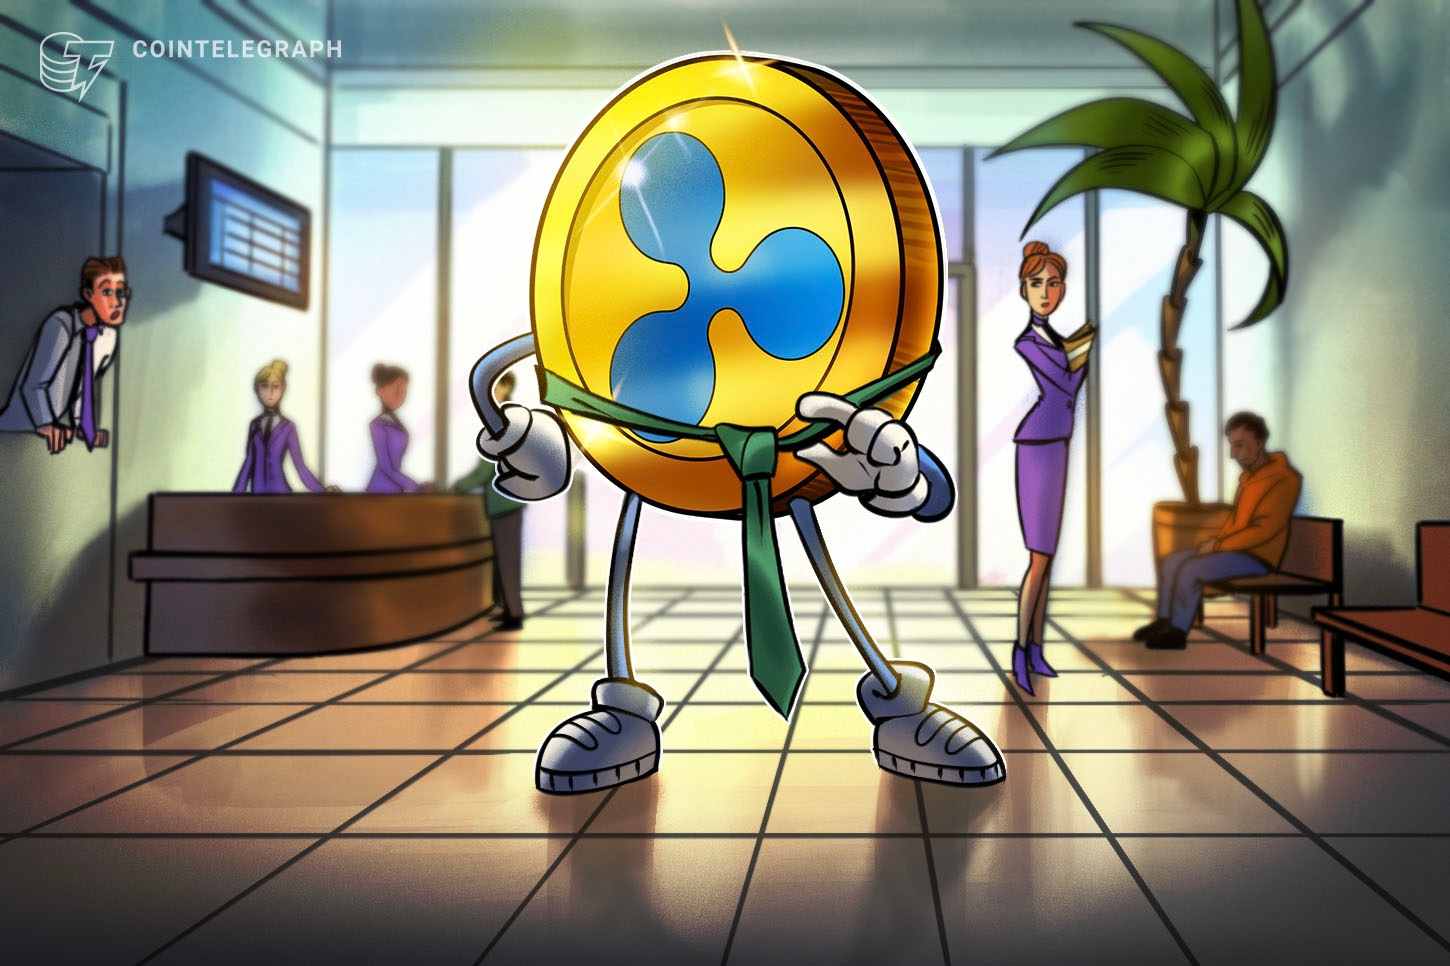 Non-Fungible Token (NFT) Collection - Ripple launches $250M fund for NFT creators